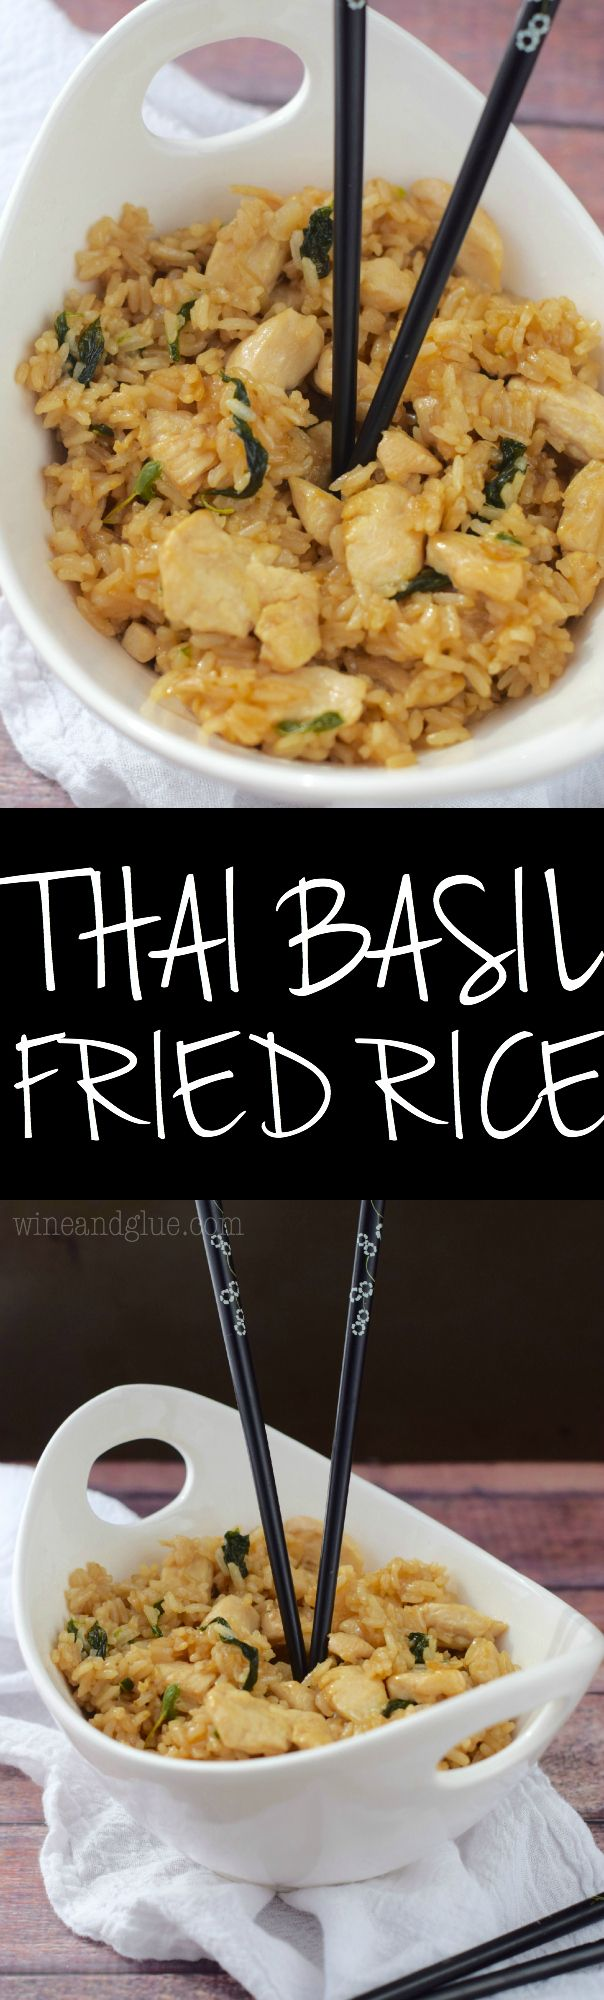 Thai Basil Fried Rice that is absolutely delicious! Comes together easily and tastes just as delicious as takeout!